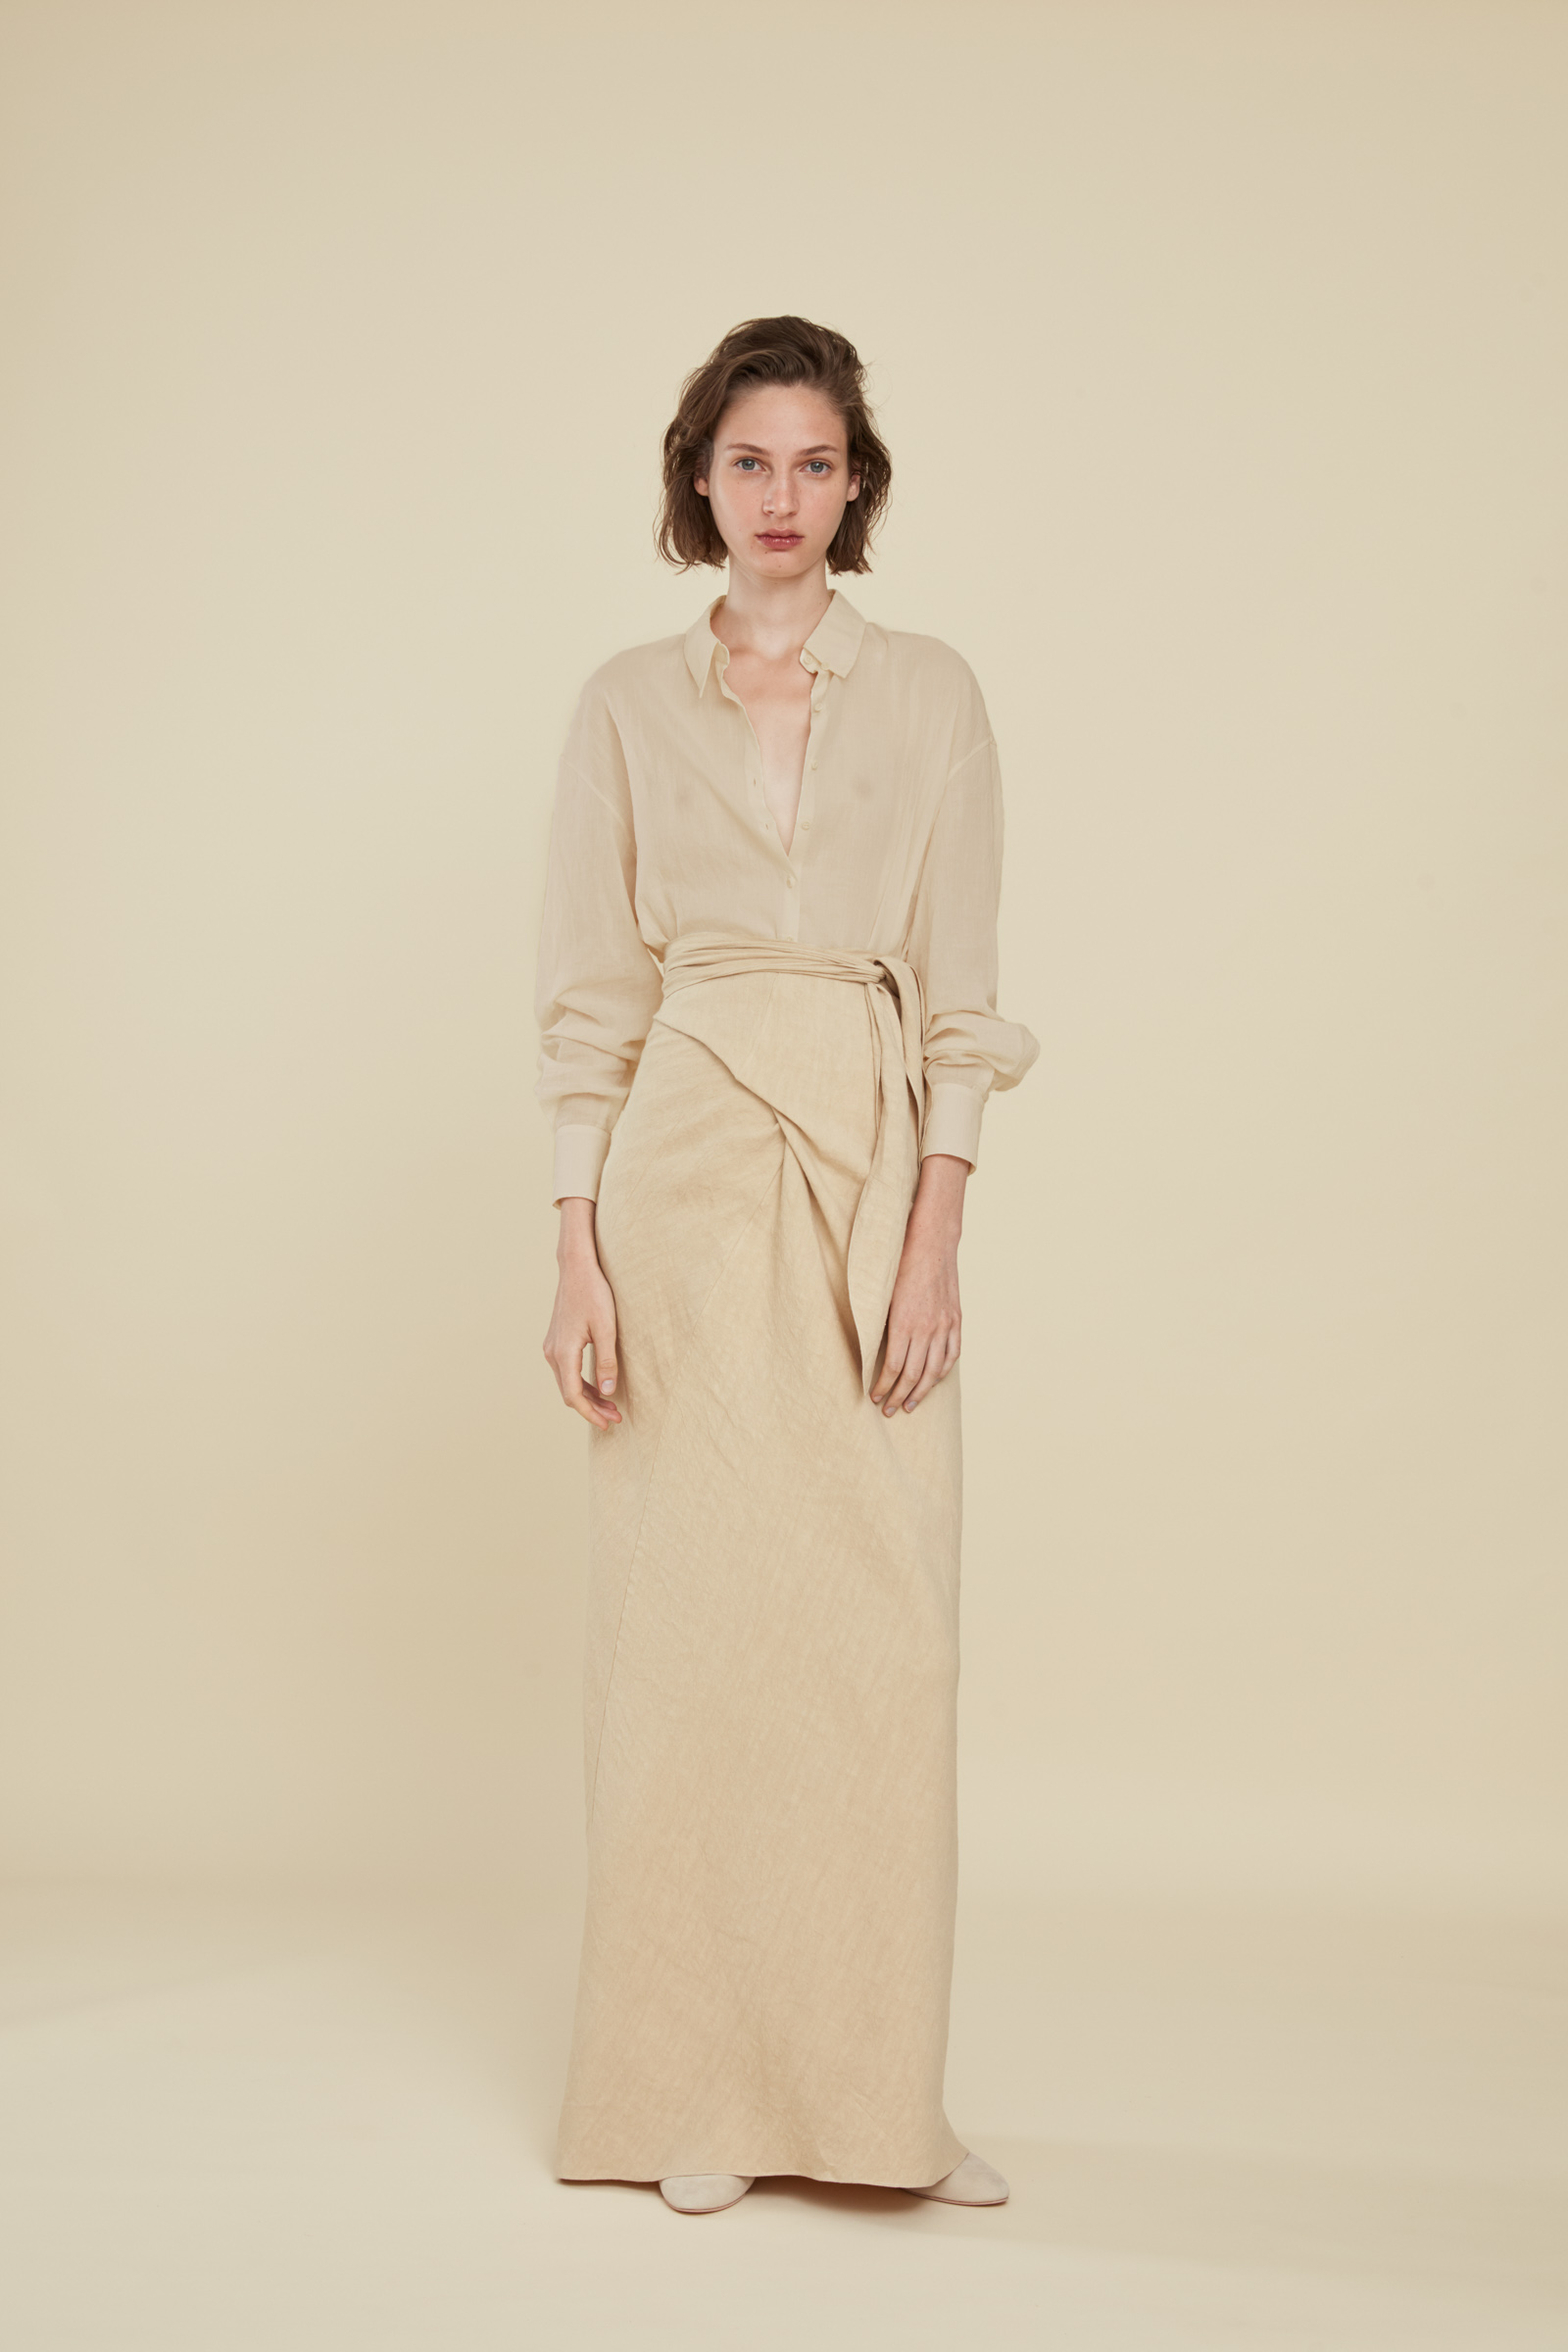 MATIAS BEIGE COTTON VOILLE SHIRT, ESHOP collection – Cortana Moda